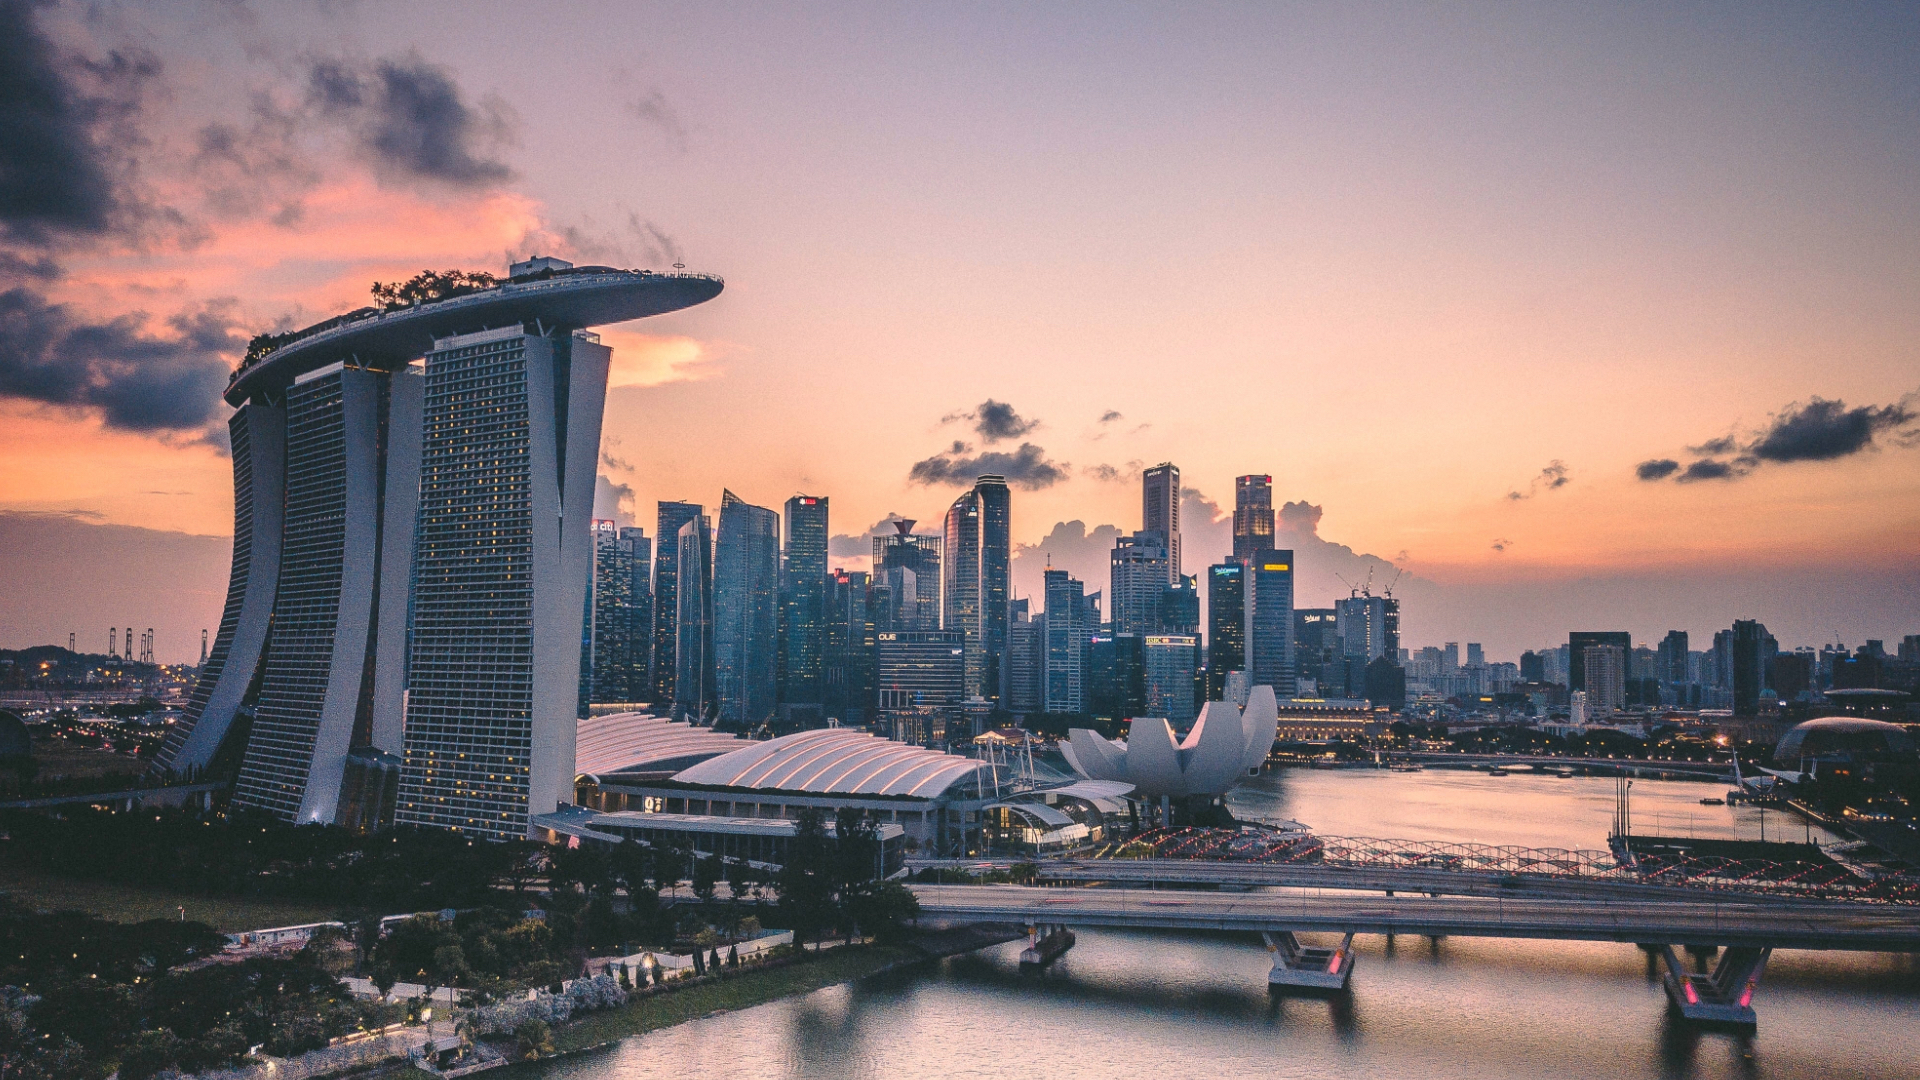 CyberOwl establishes international operations in Singapore; Richard Wagner, previously of Voyager Worldwide, leads regional operations as Business Development Director for APAC